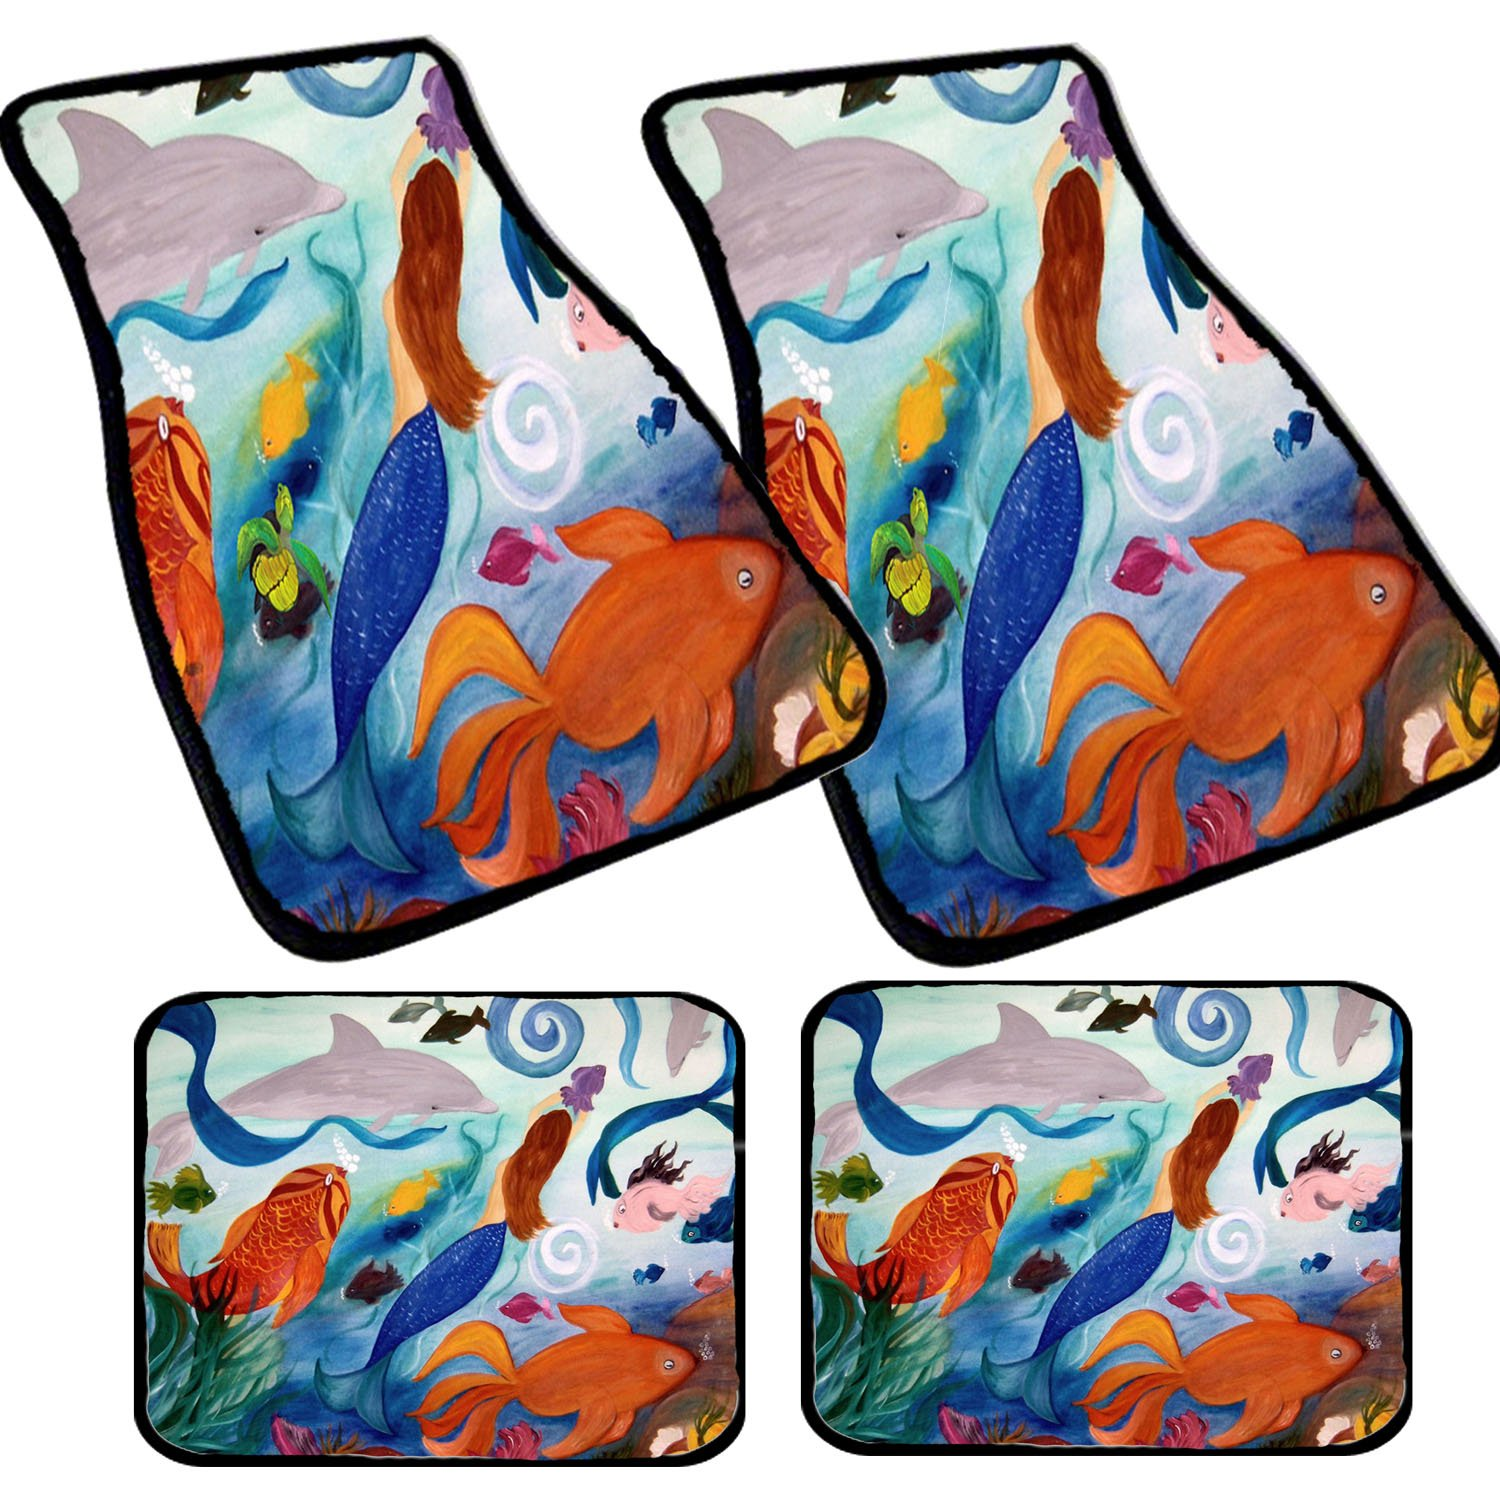 Mermaid and Tropical Fish Art Auto Car Floor Mat Sets